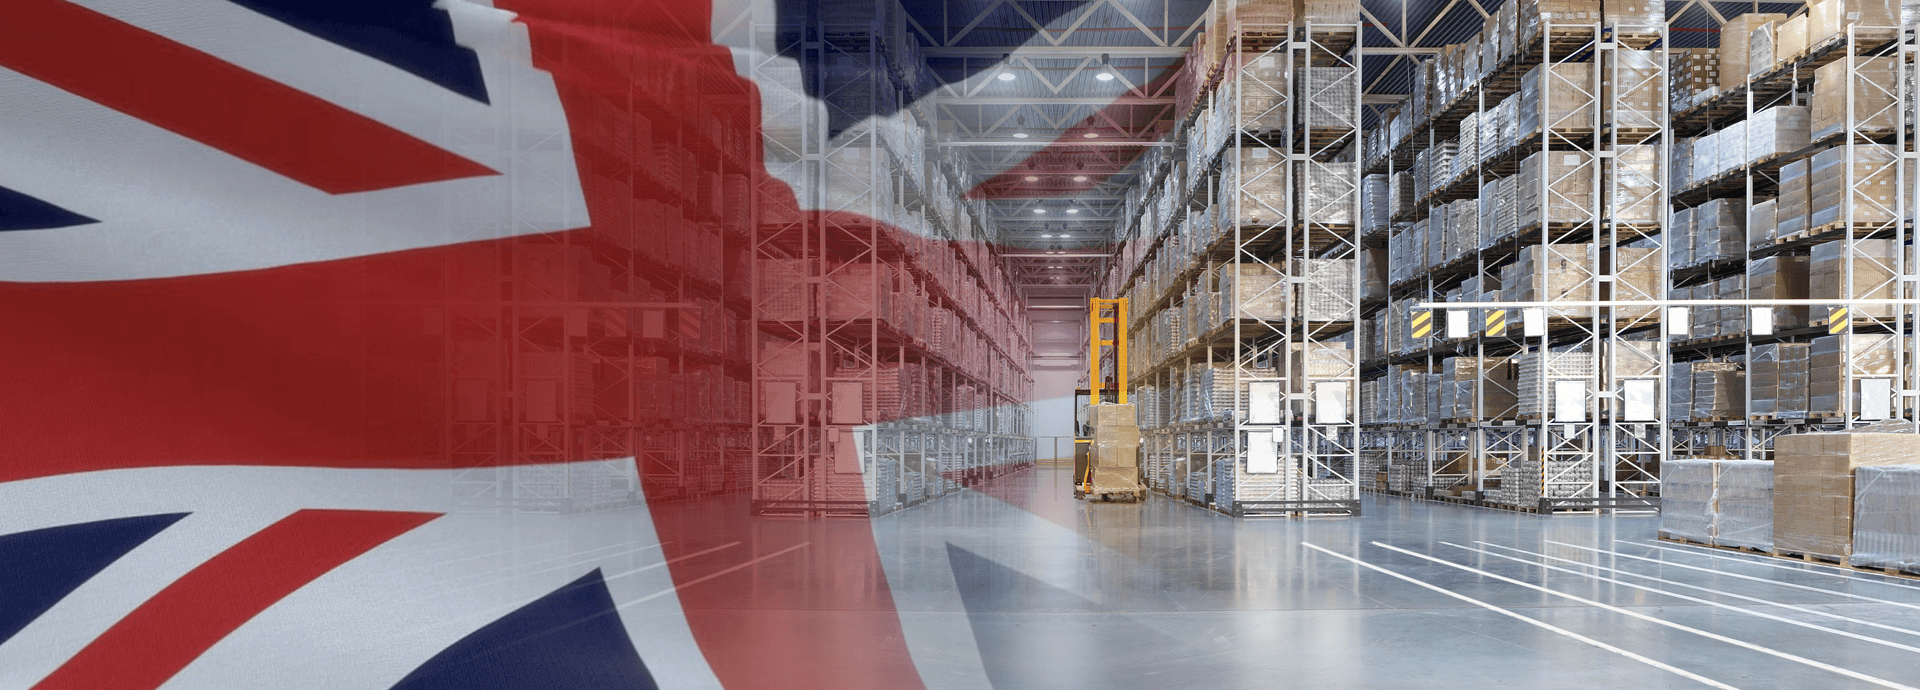 UK E-Commerce Fulfillment Warehouse